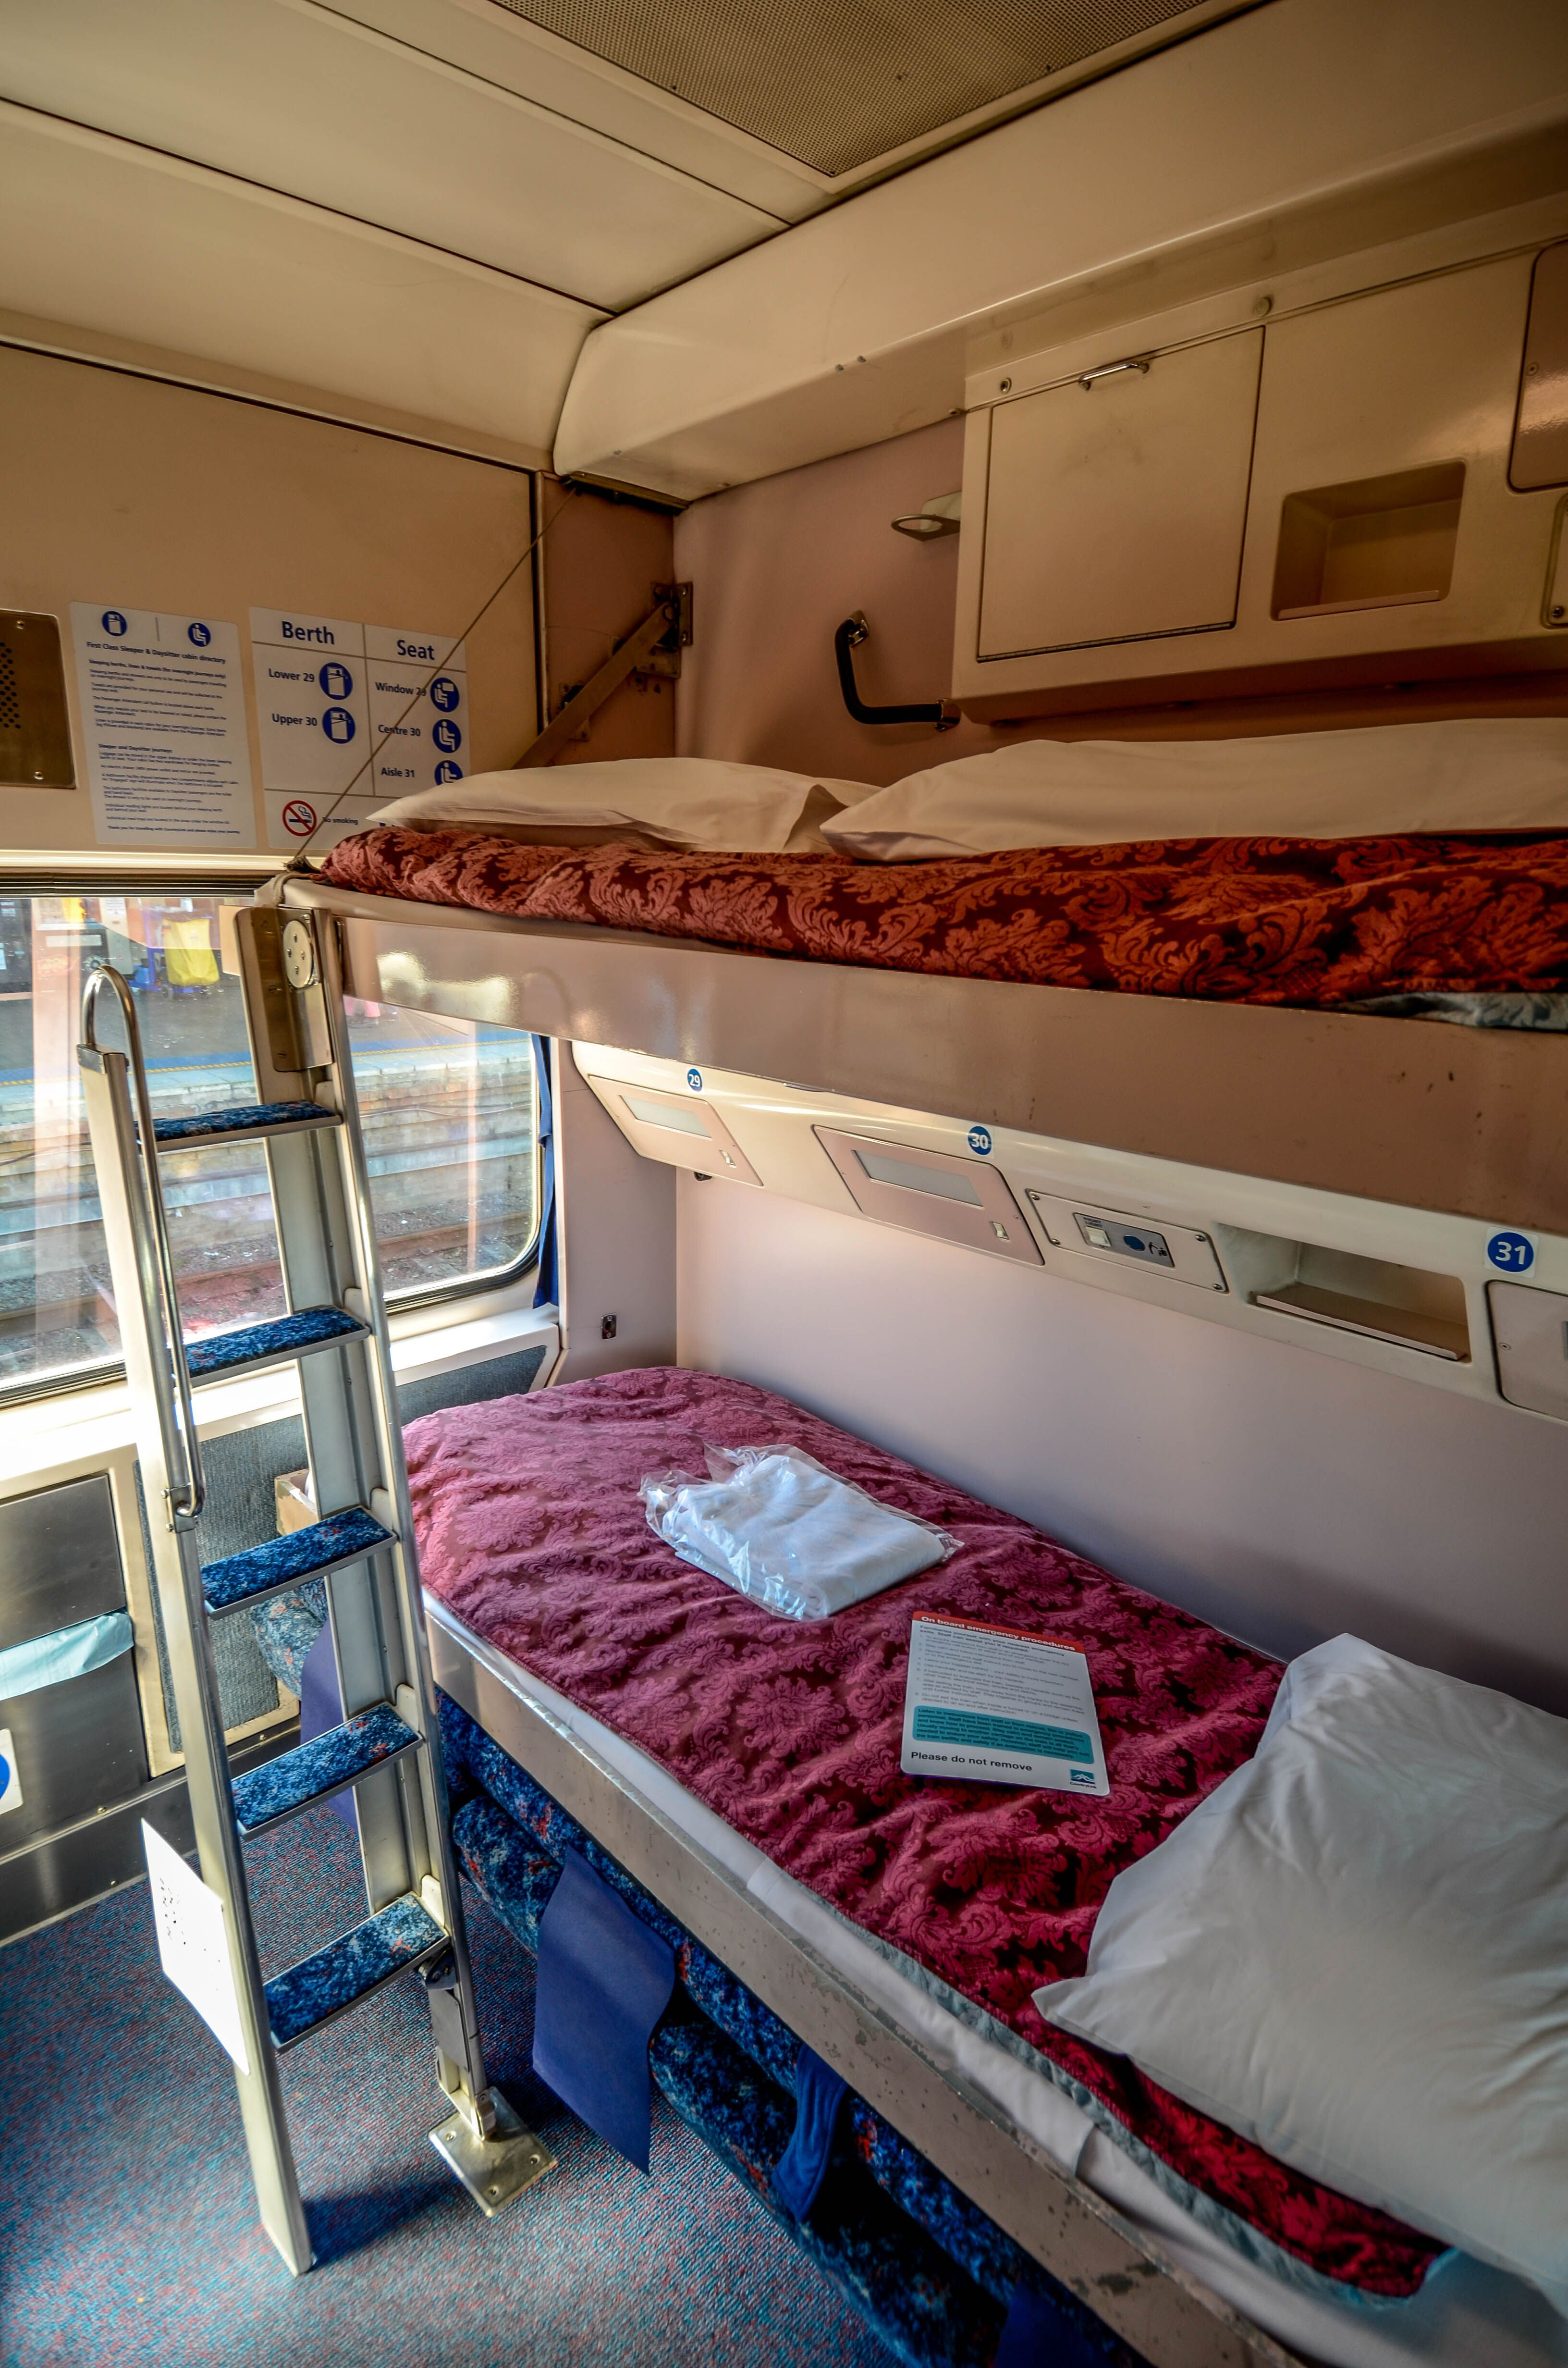 Sleeper trains... why do these have such a bad rep? You